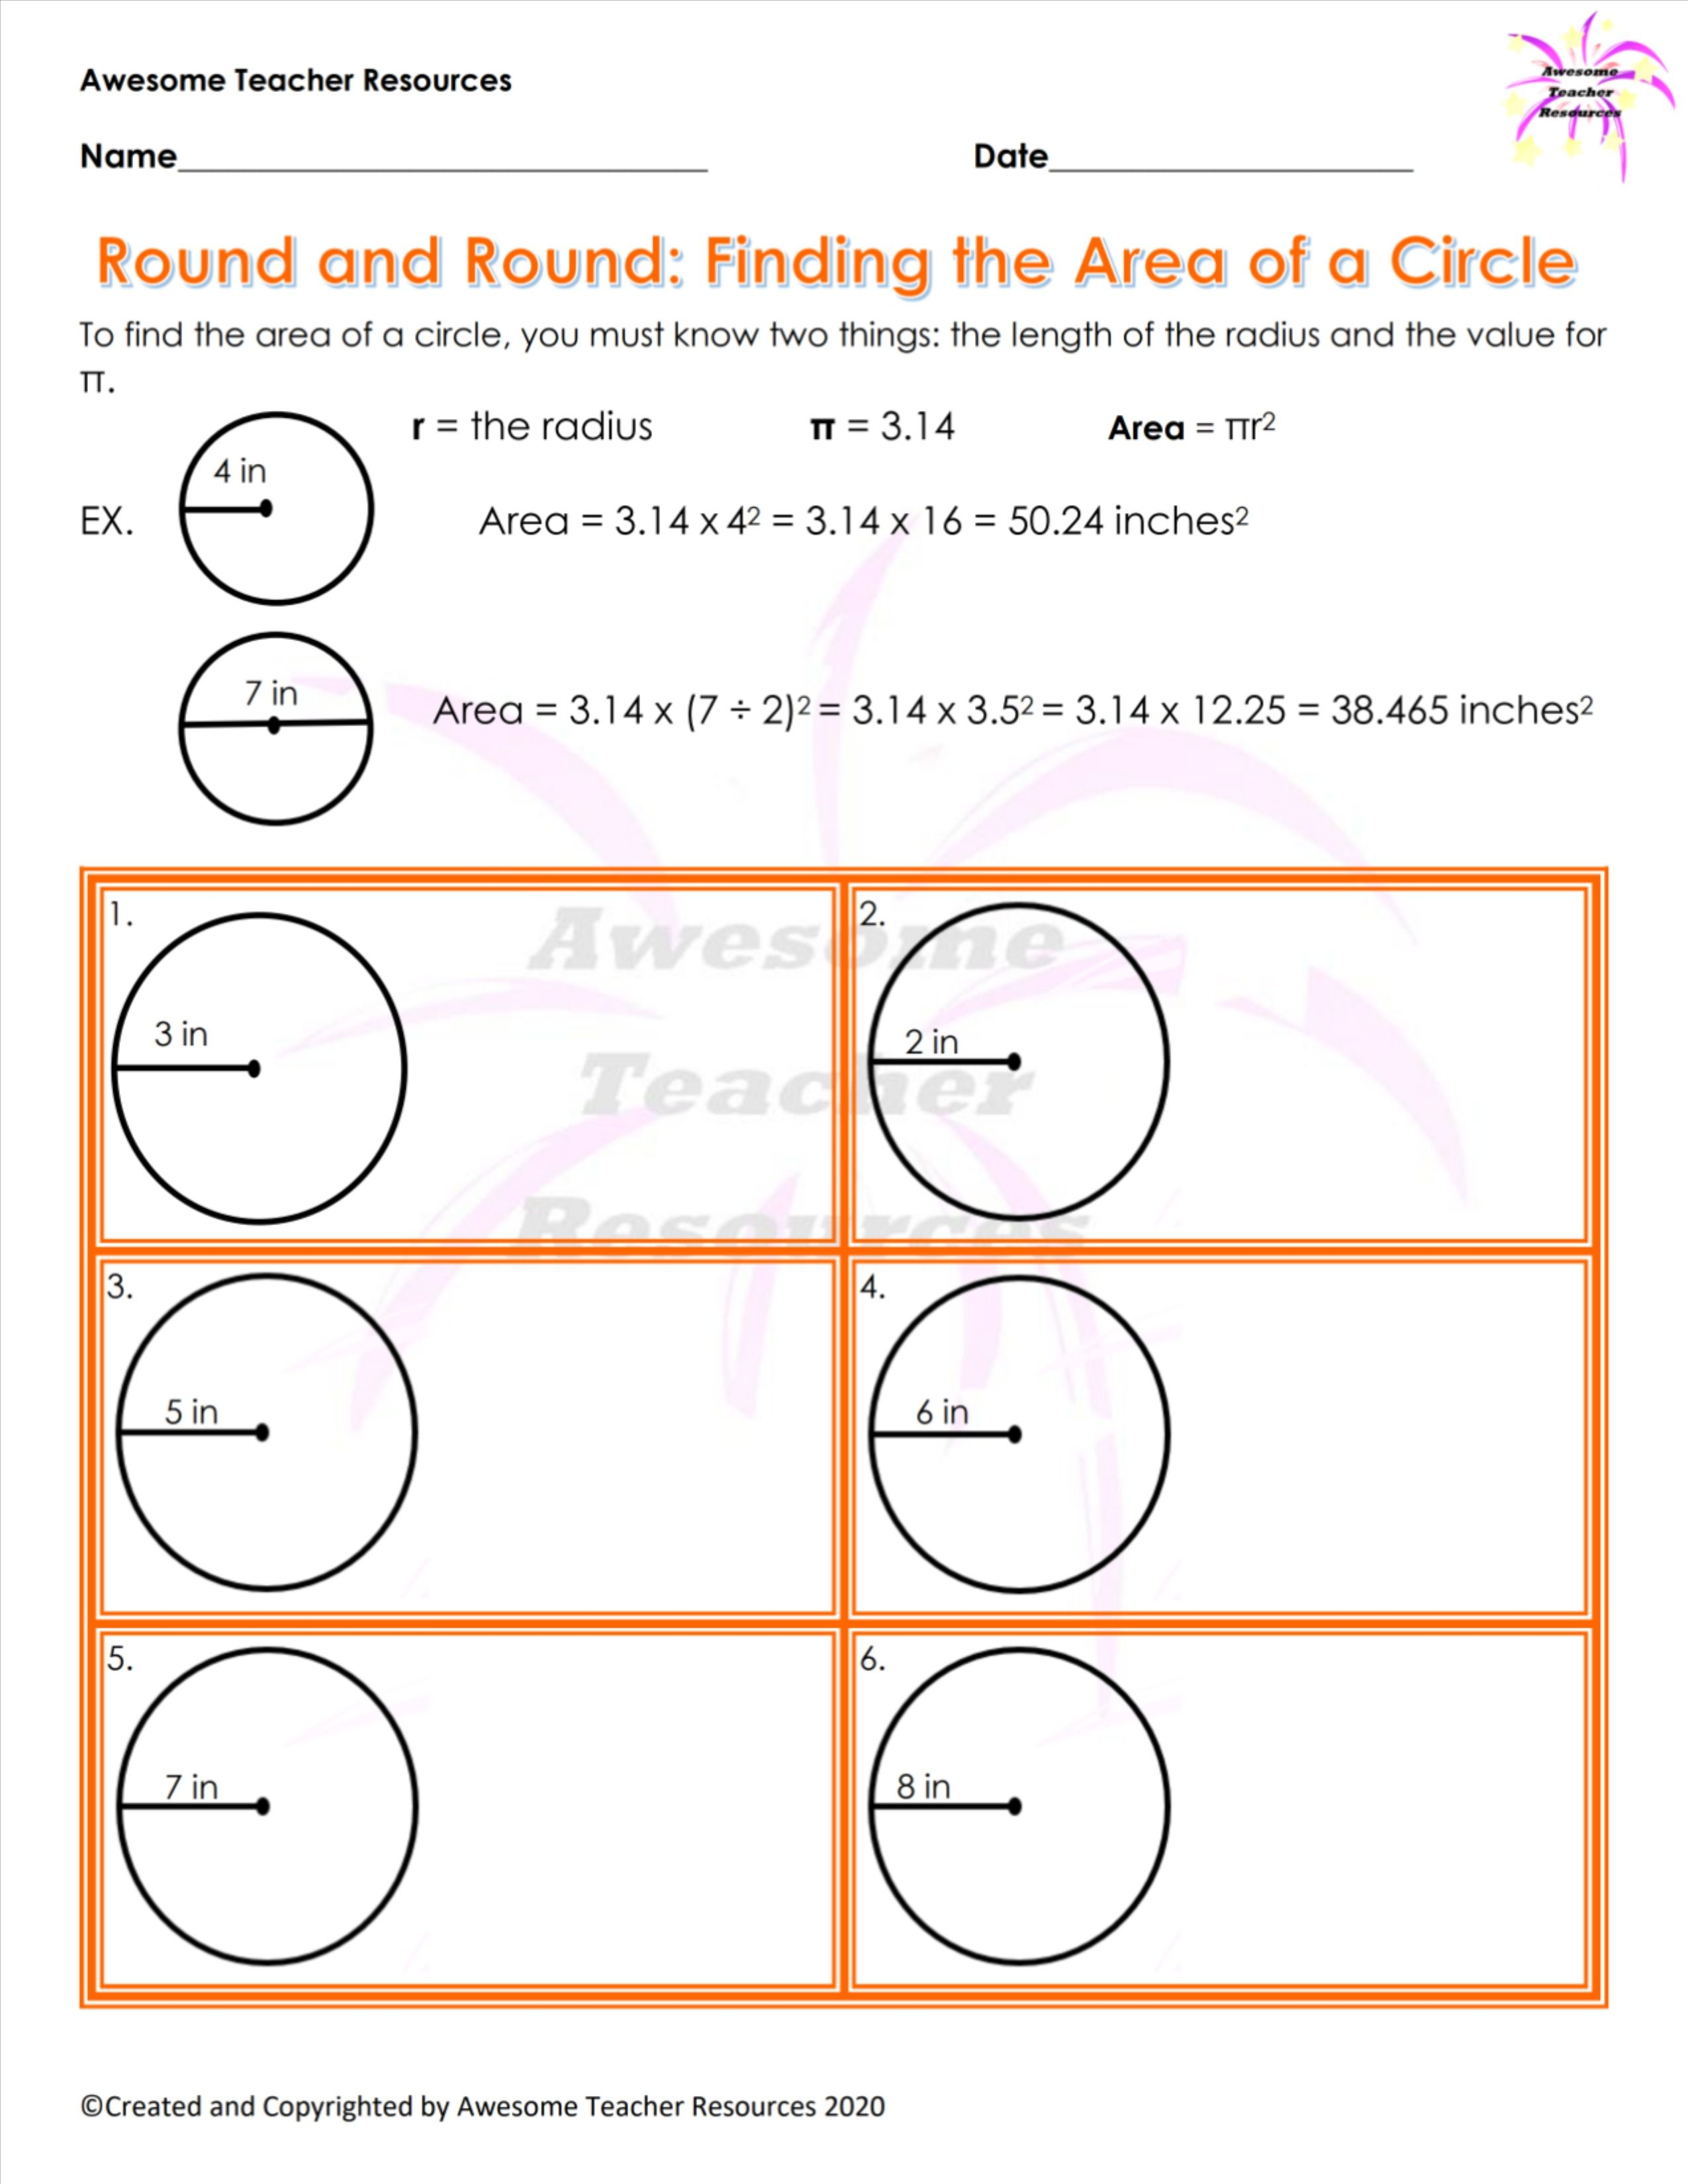 Round And Round Finding The Area Of A Circle Worksheet In